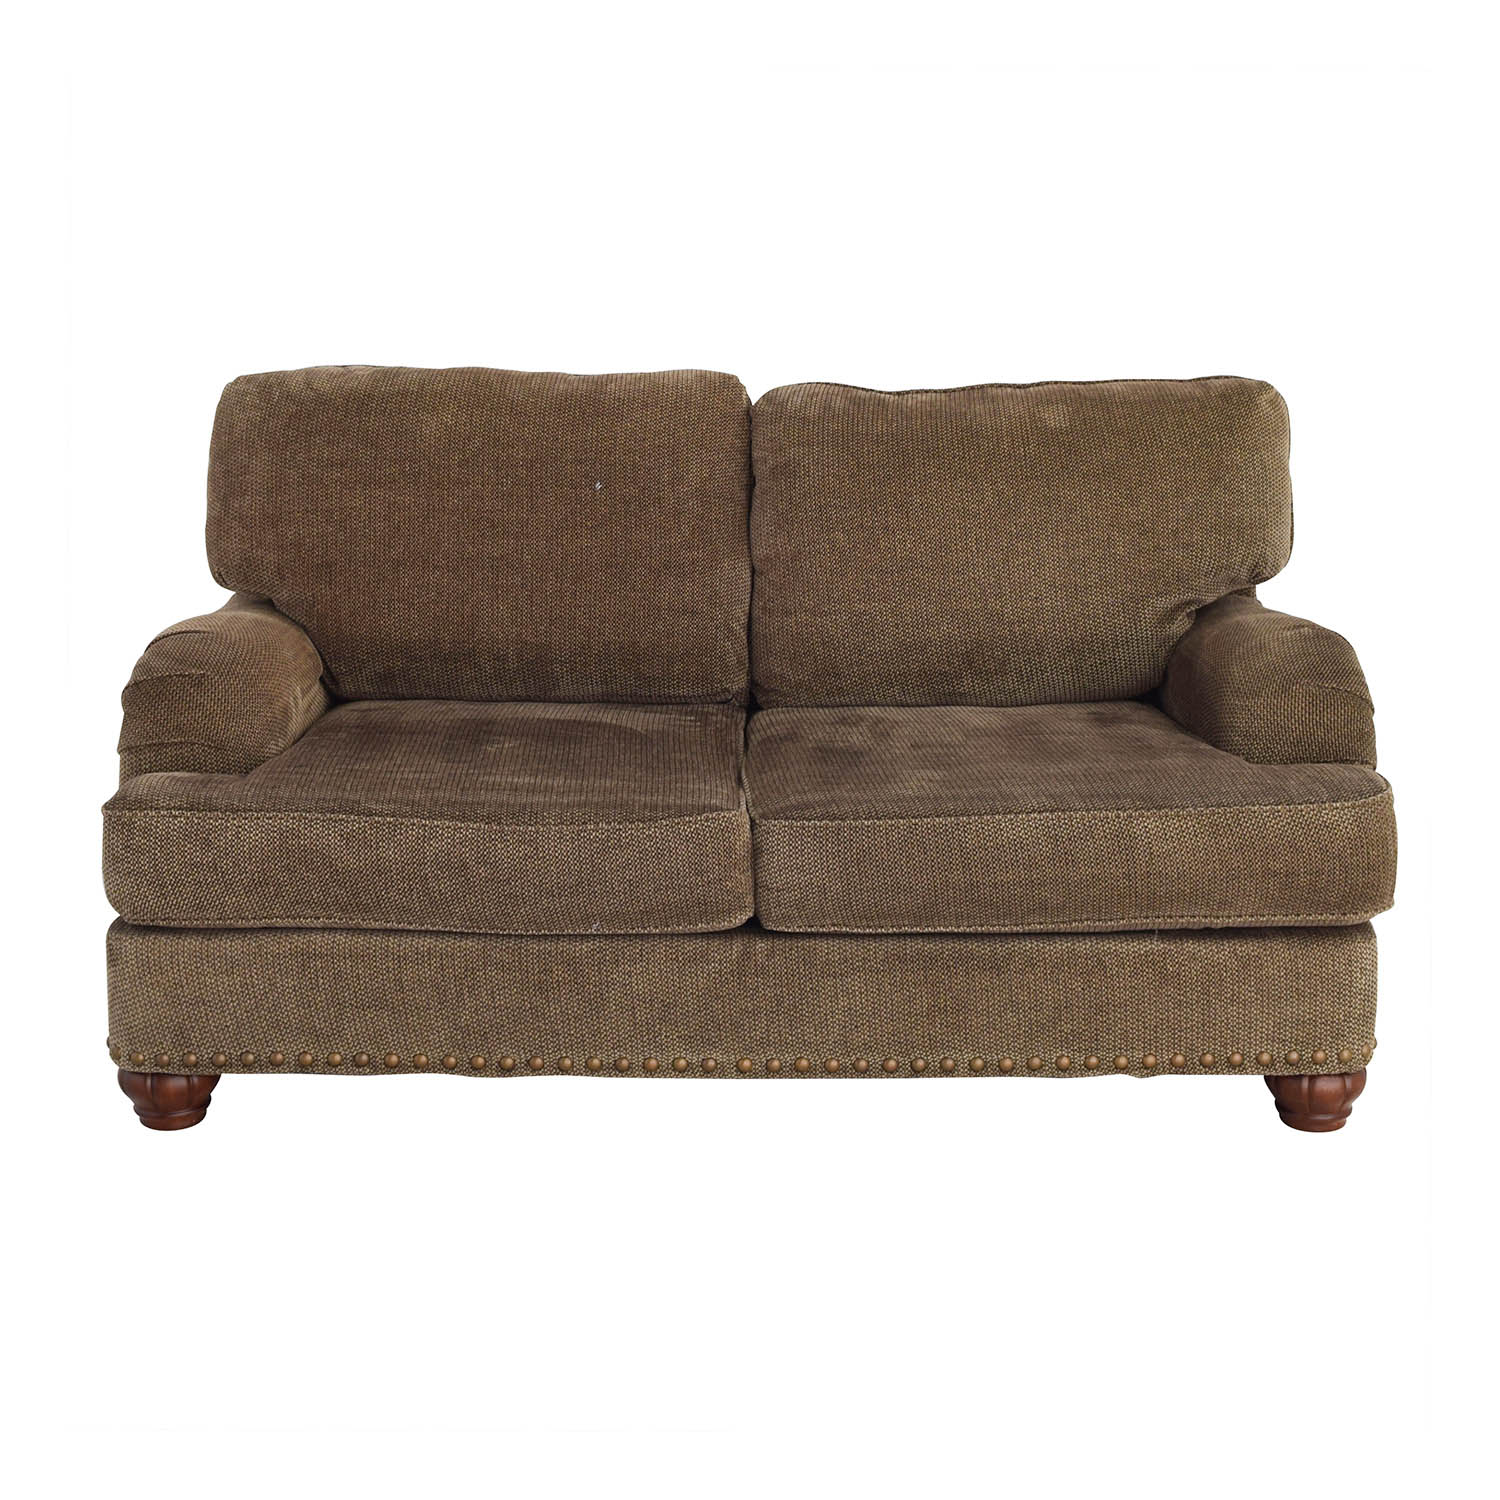 78% OFF Ashley Furniture Ashley Furniture Barclay Place Jewel